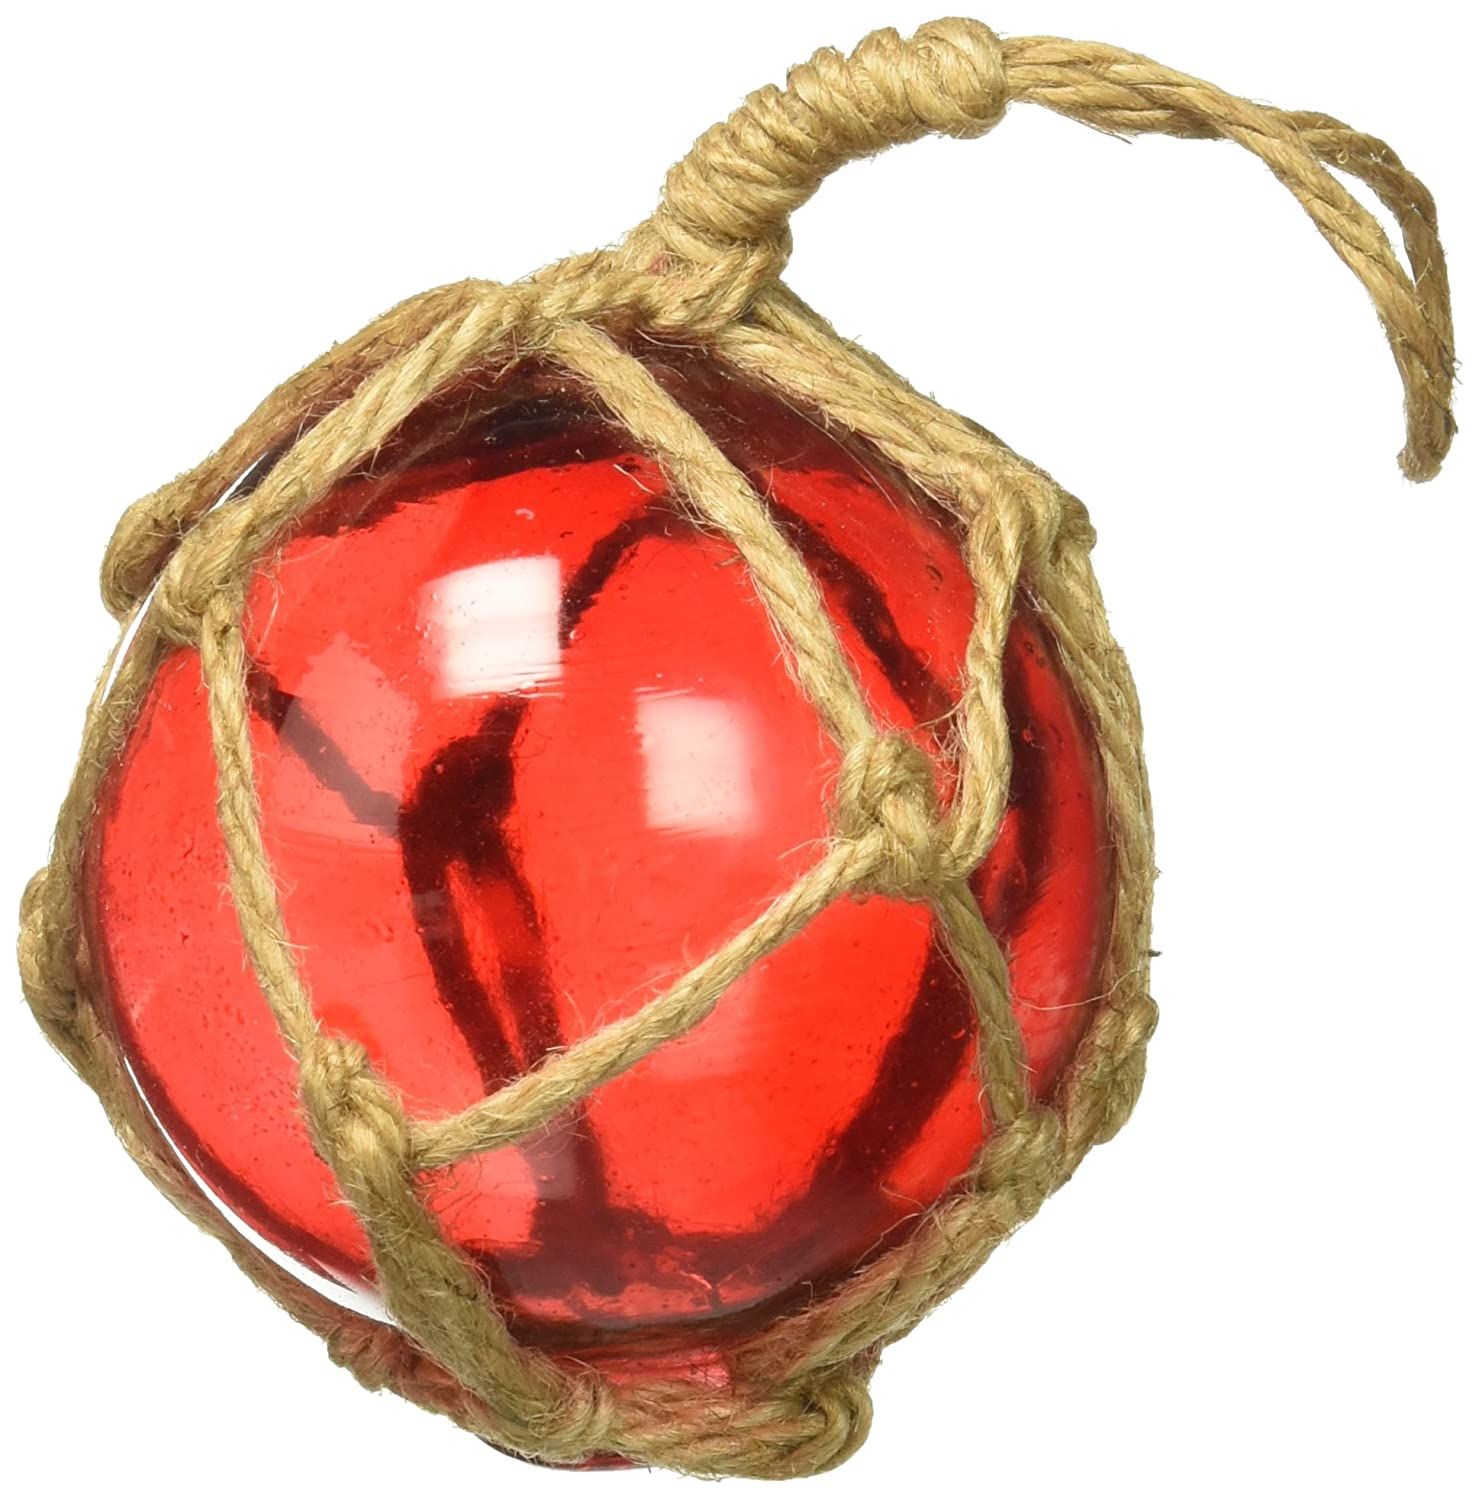 Hampton Nautical Red-Glass-3-Old-X Red Japanese Glass Ball Fishing Float with Brown Netting Ornament 3-Christmas Decor 3